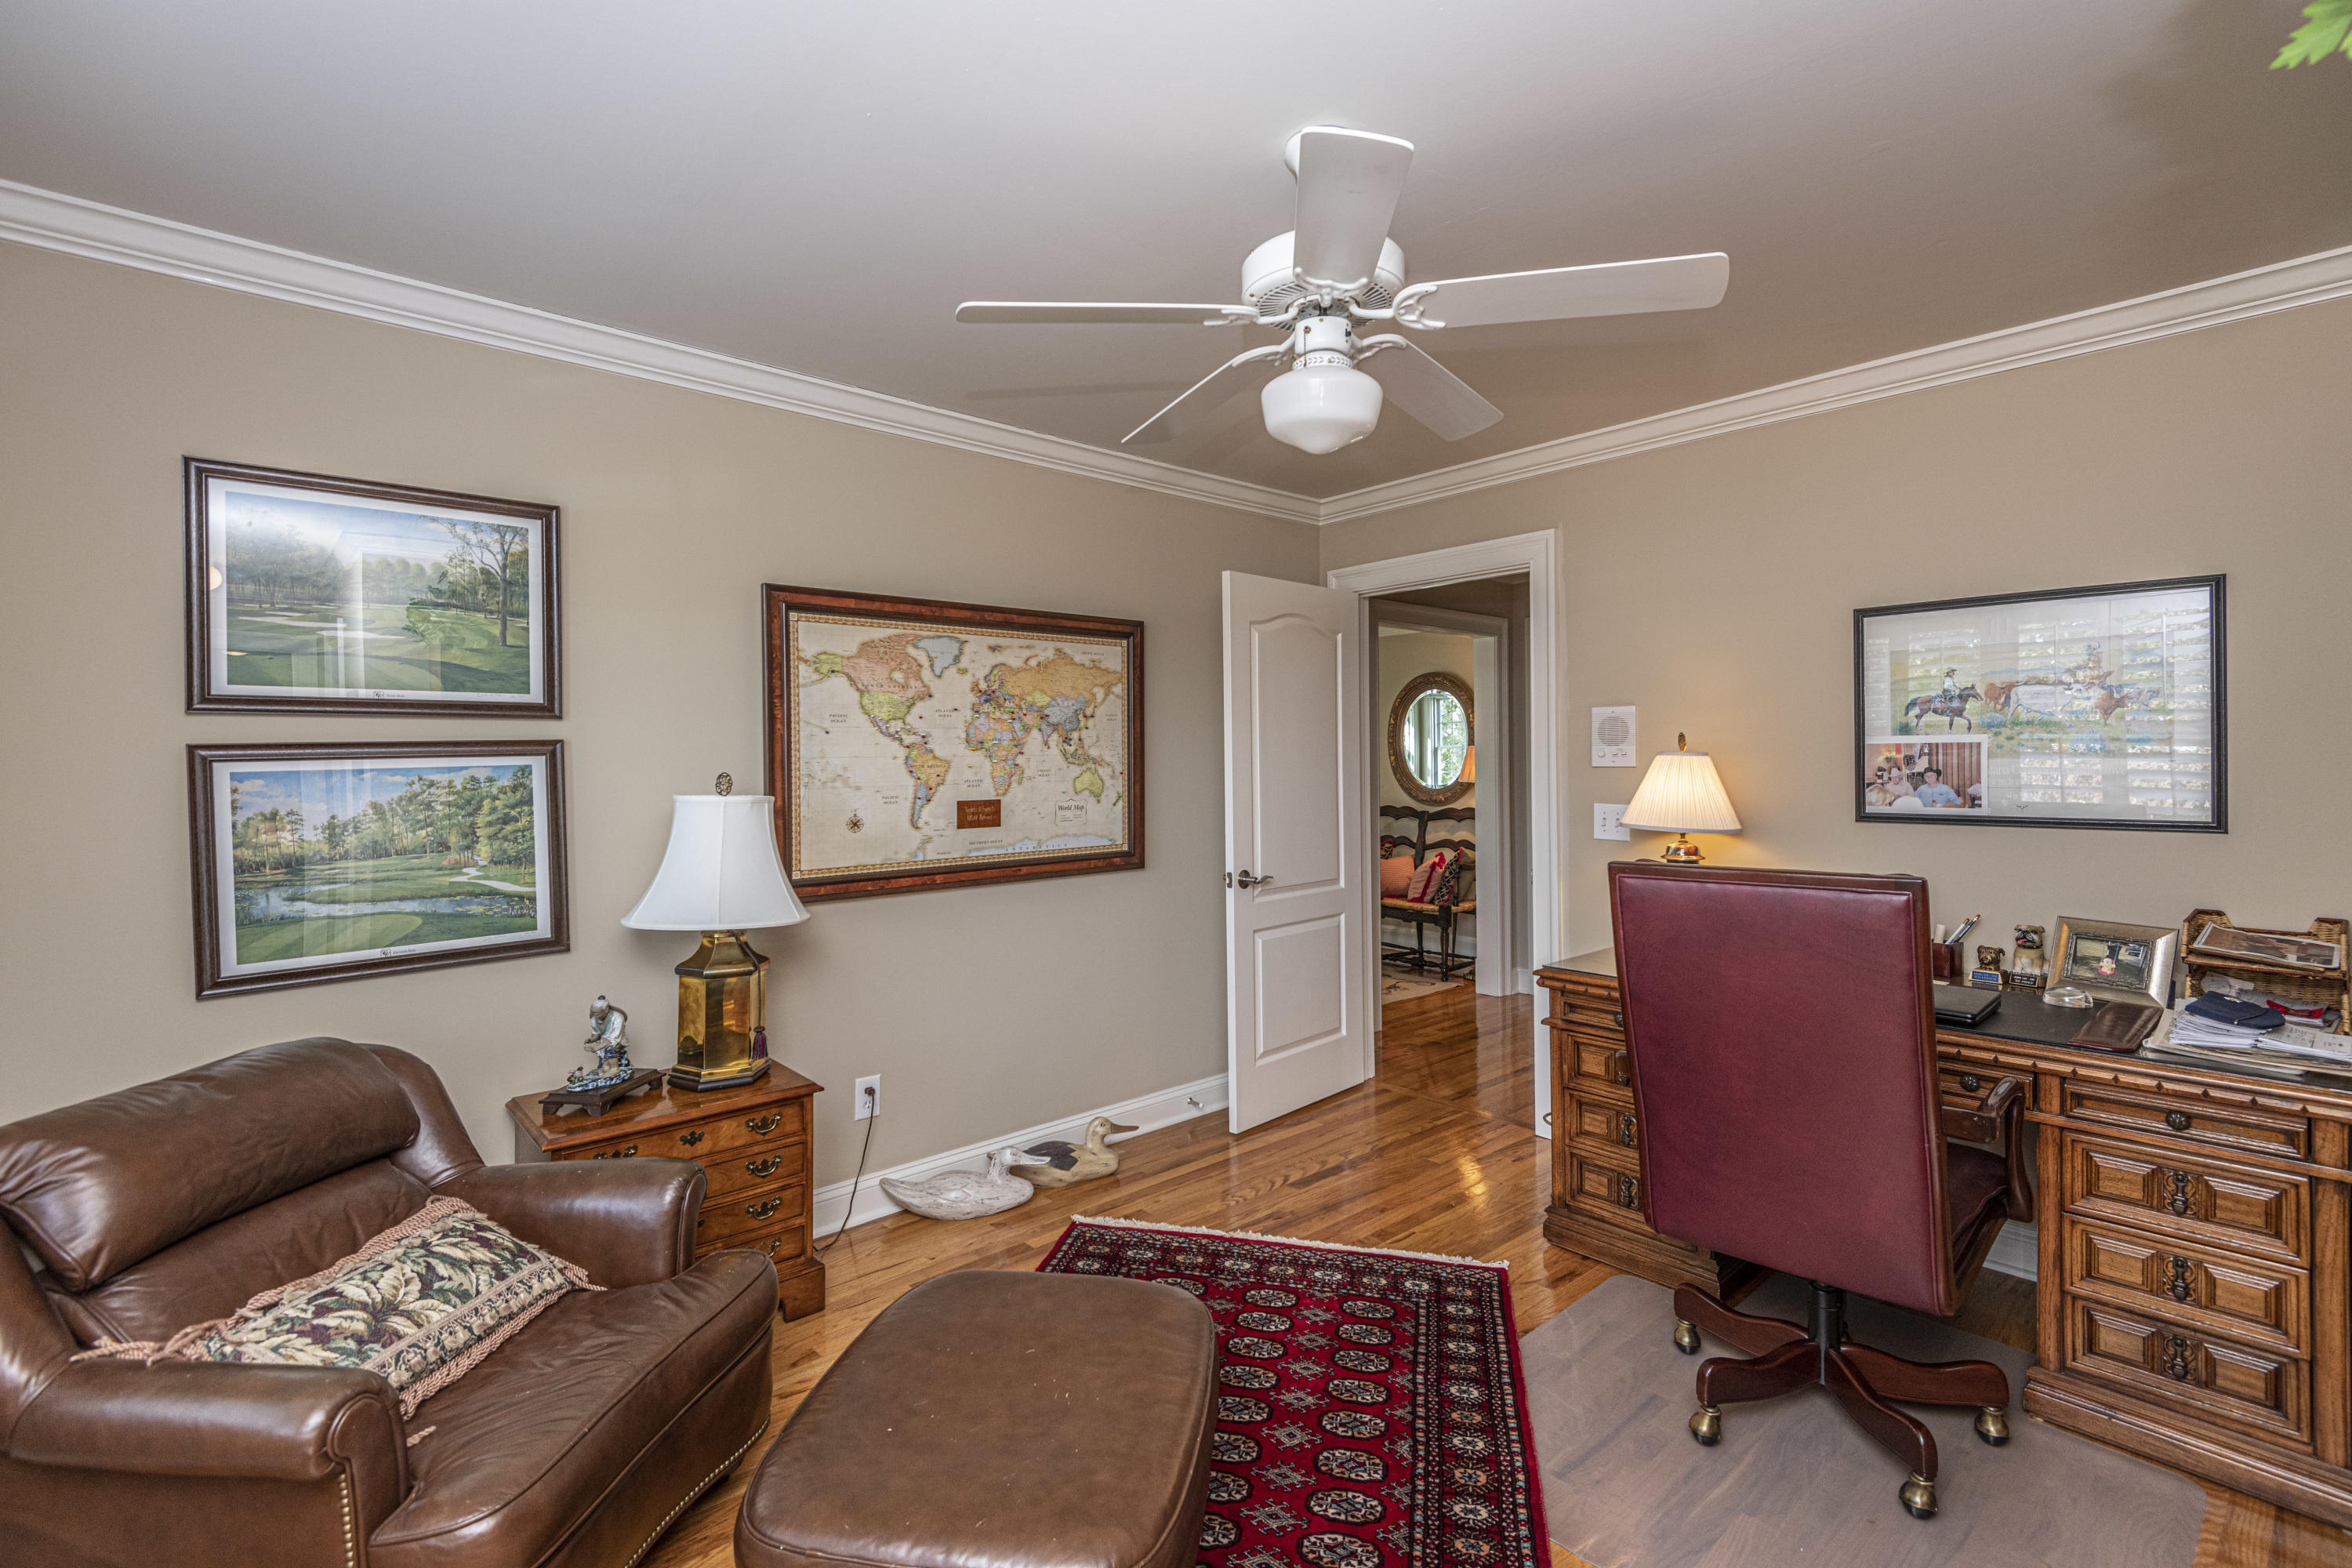 Coosaw Creek Country Club Homes For Sale - 8642 Fairway Woods, North Charleston, SC - 42